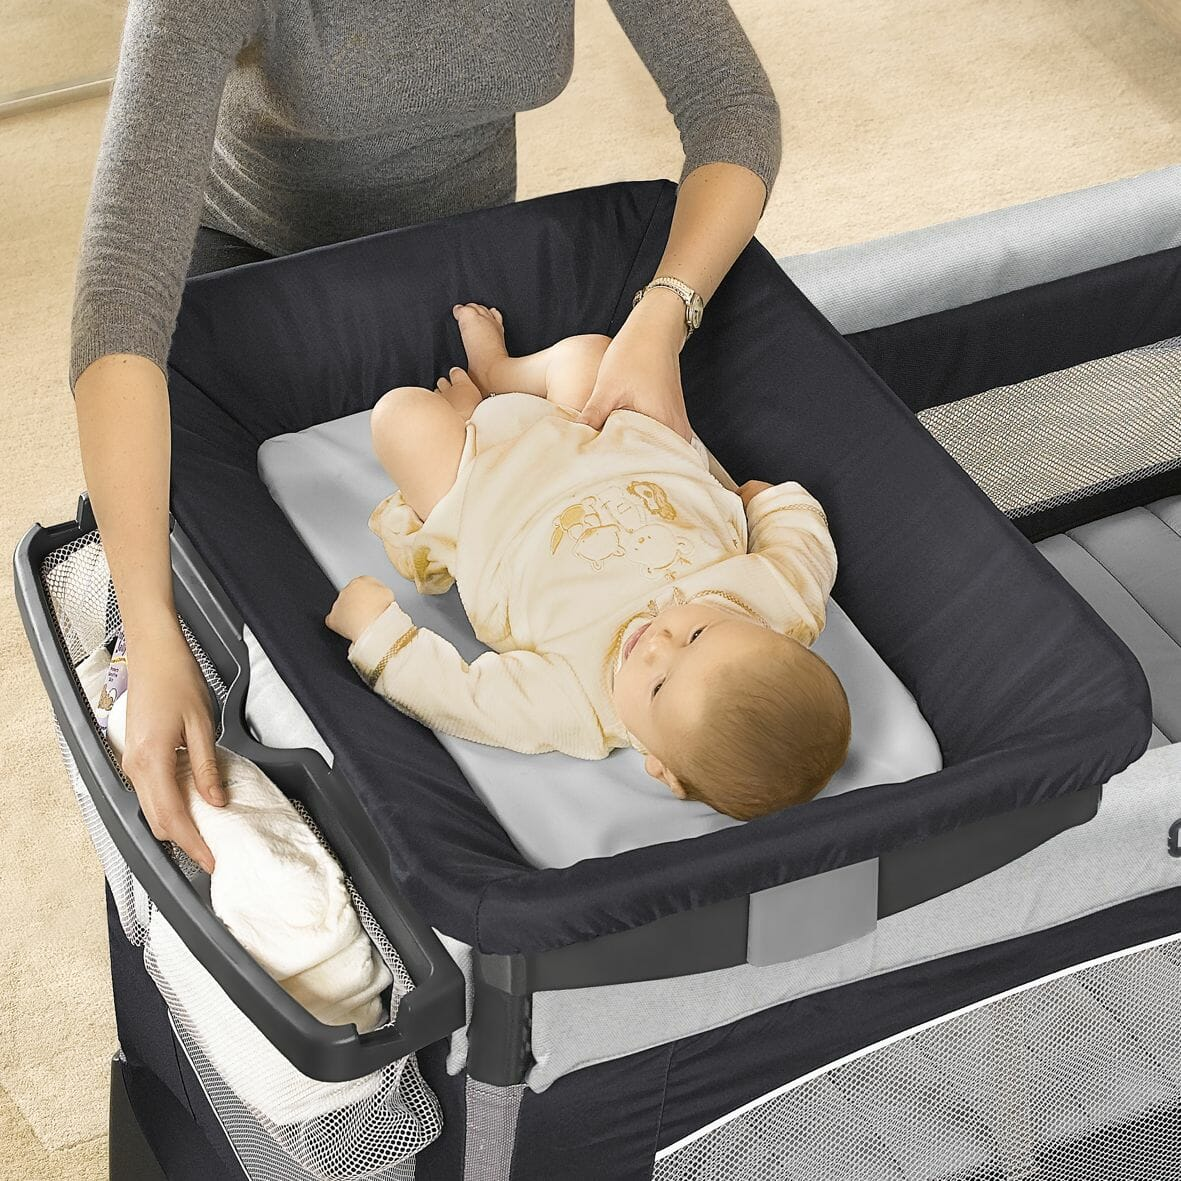 Chicco Lullaby Easy Luxury Portable Baby Centre changer